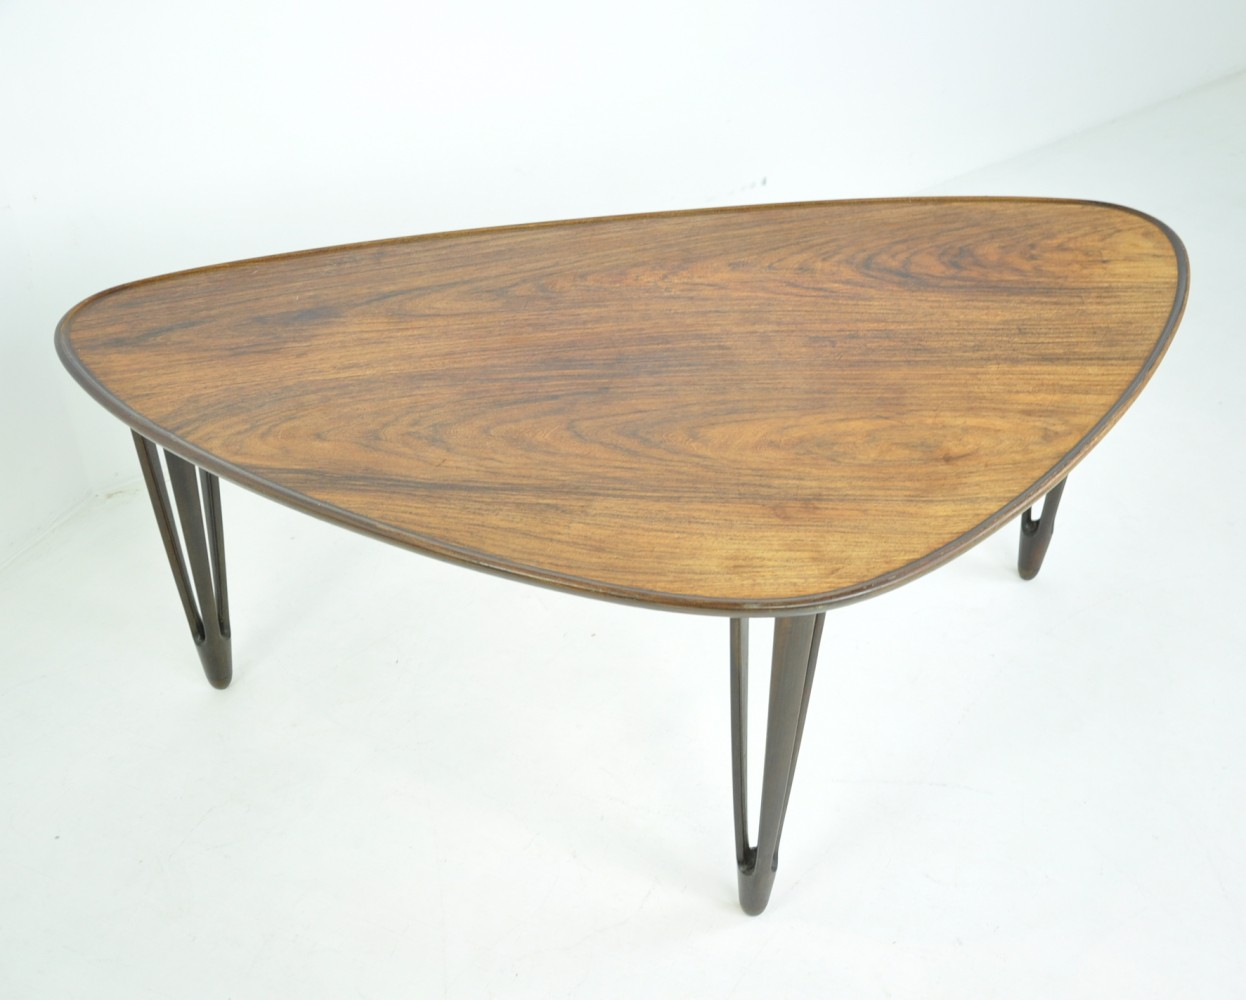 Rosewood Coffee Table, Denmark 1950s